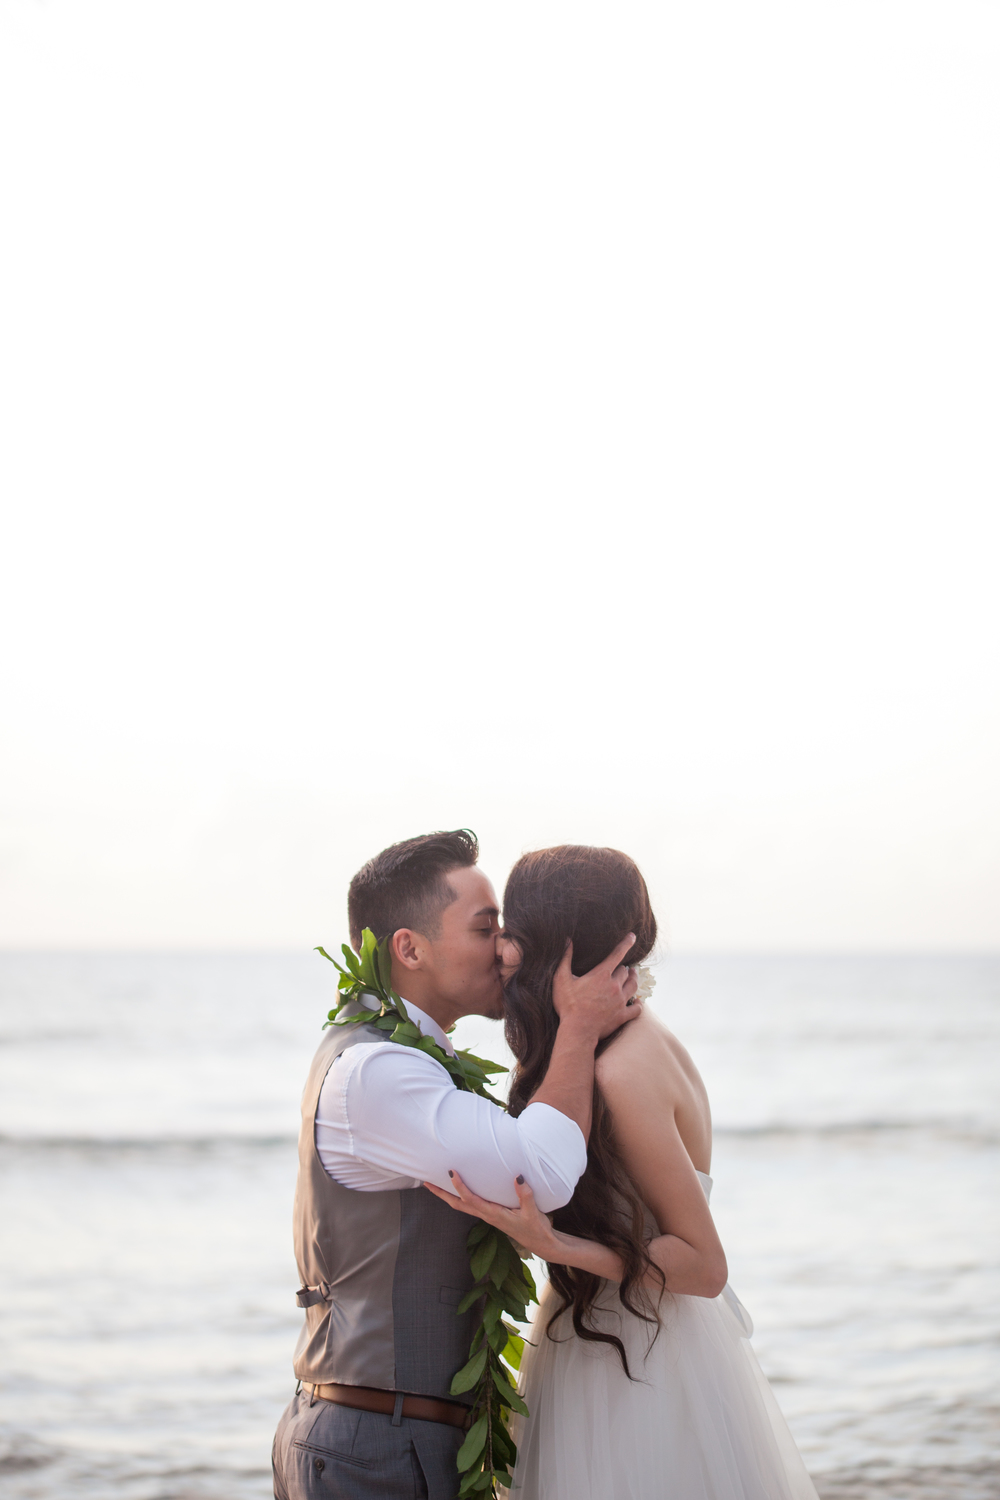 big island hawaii mauna lani resort wedding © kelilina photography 20160523183552-1.jpg